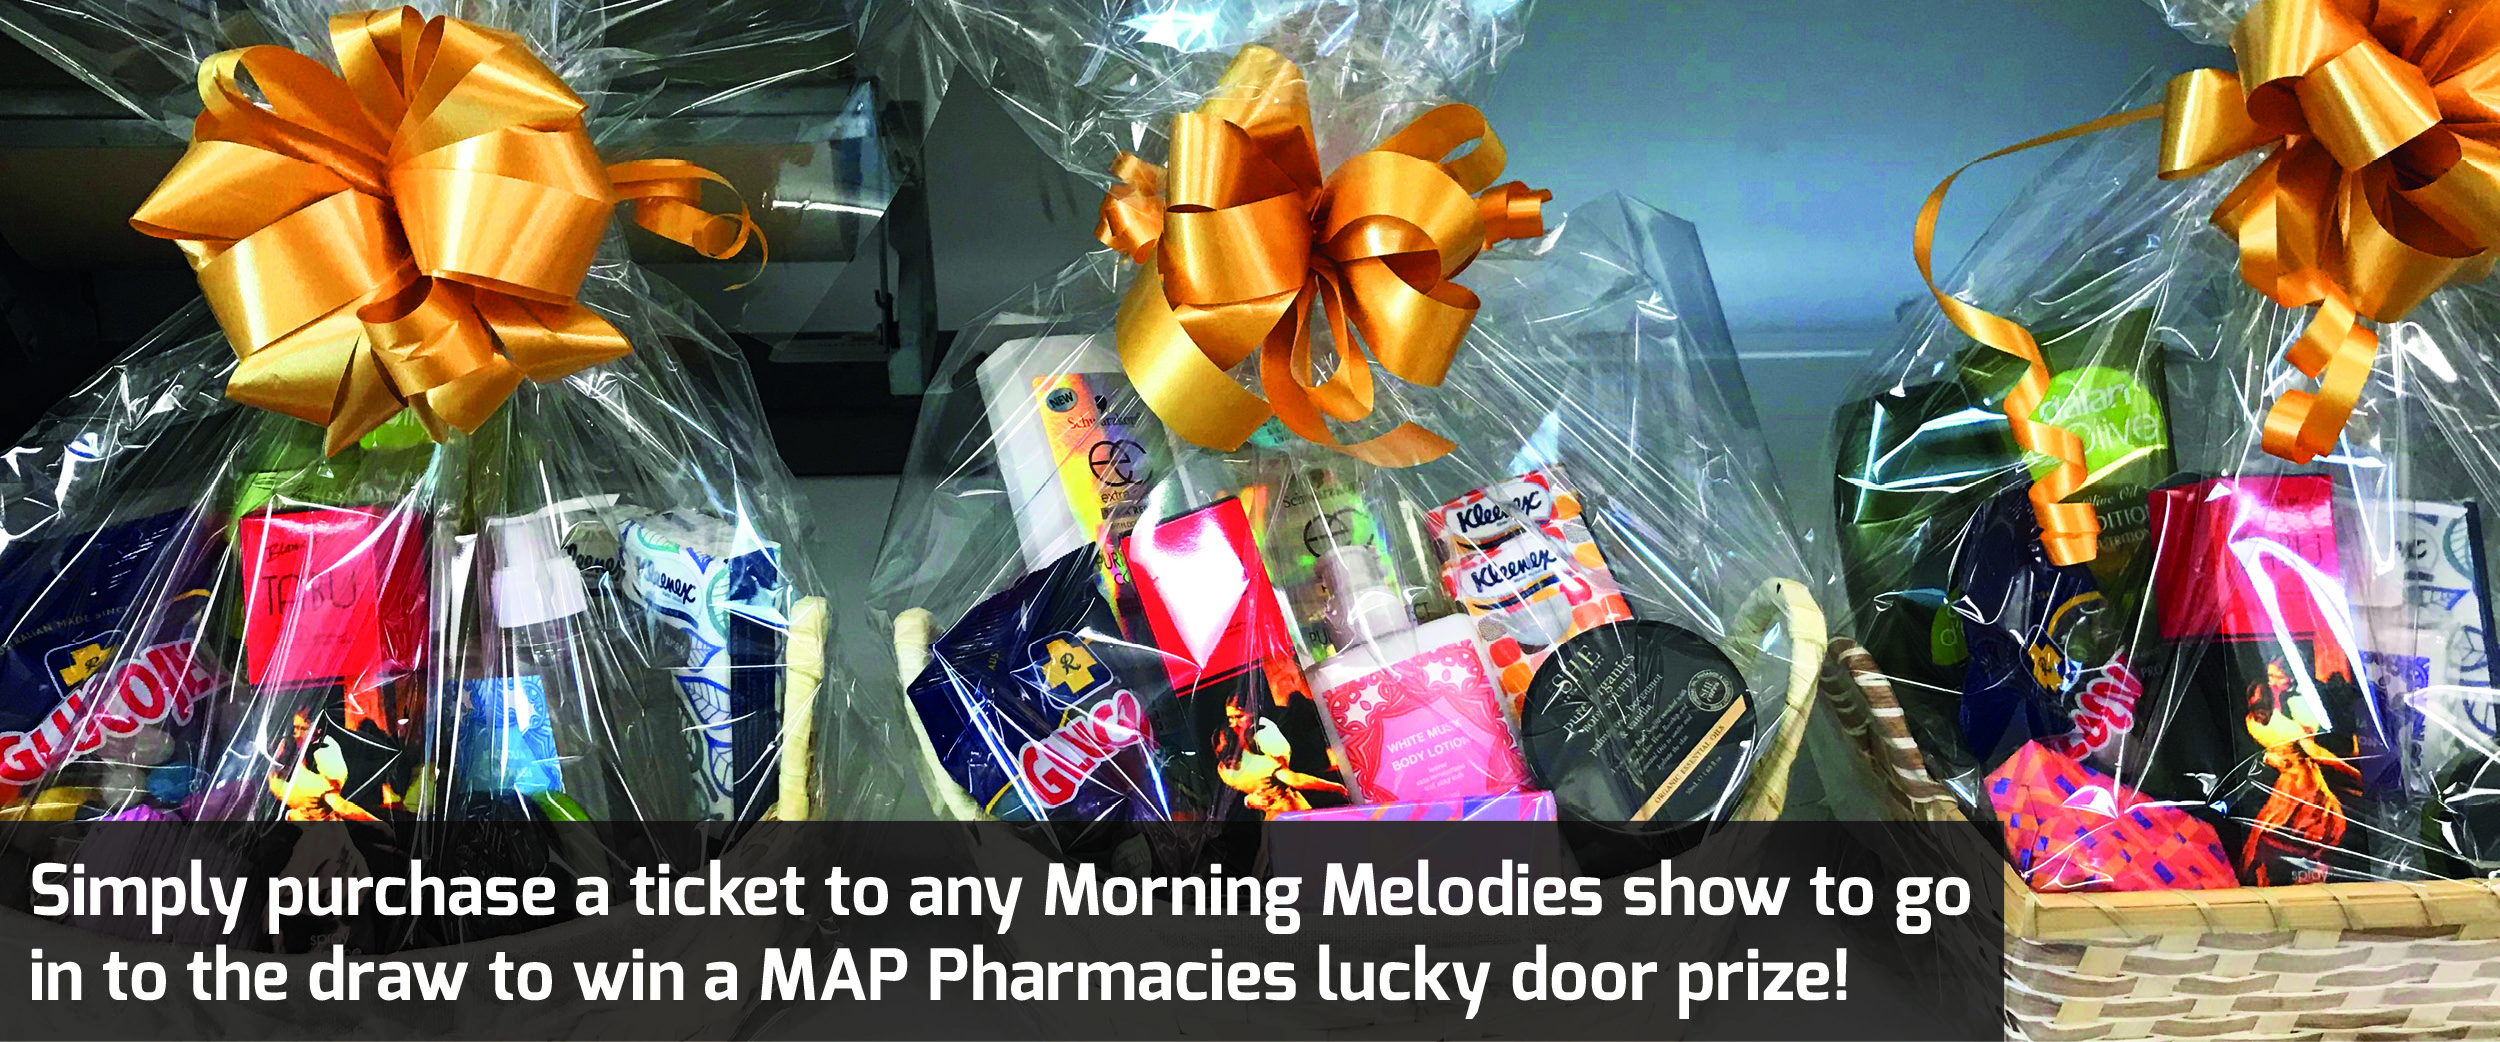 Morning Melodies Lucky Door Prize